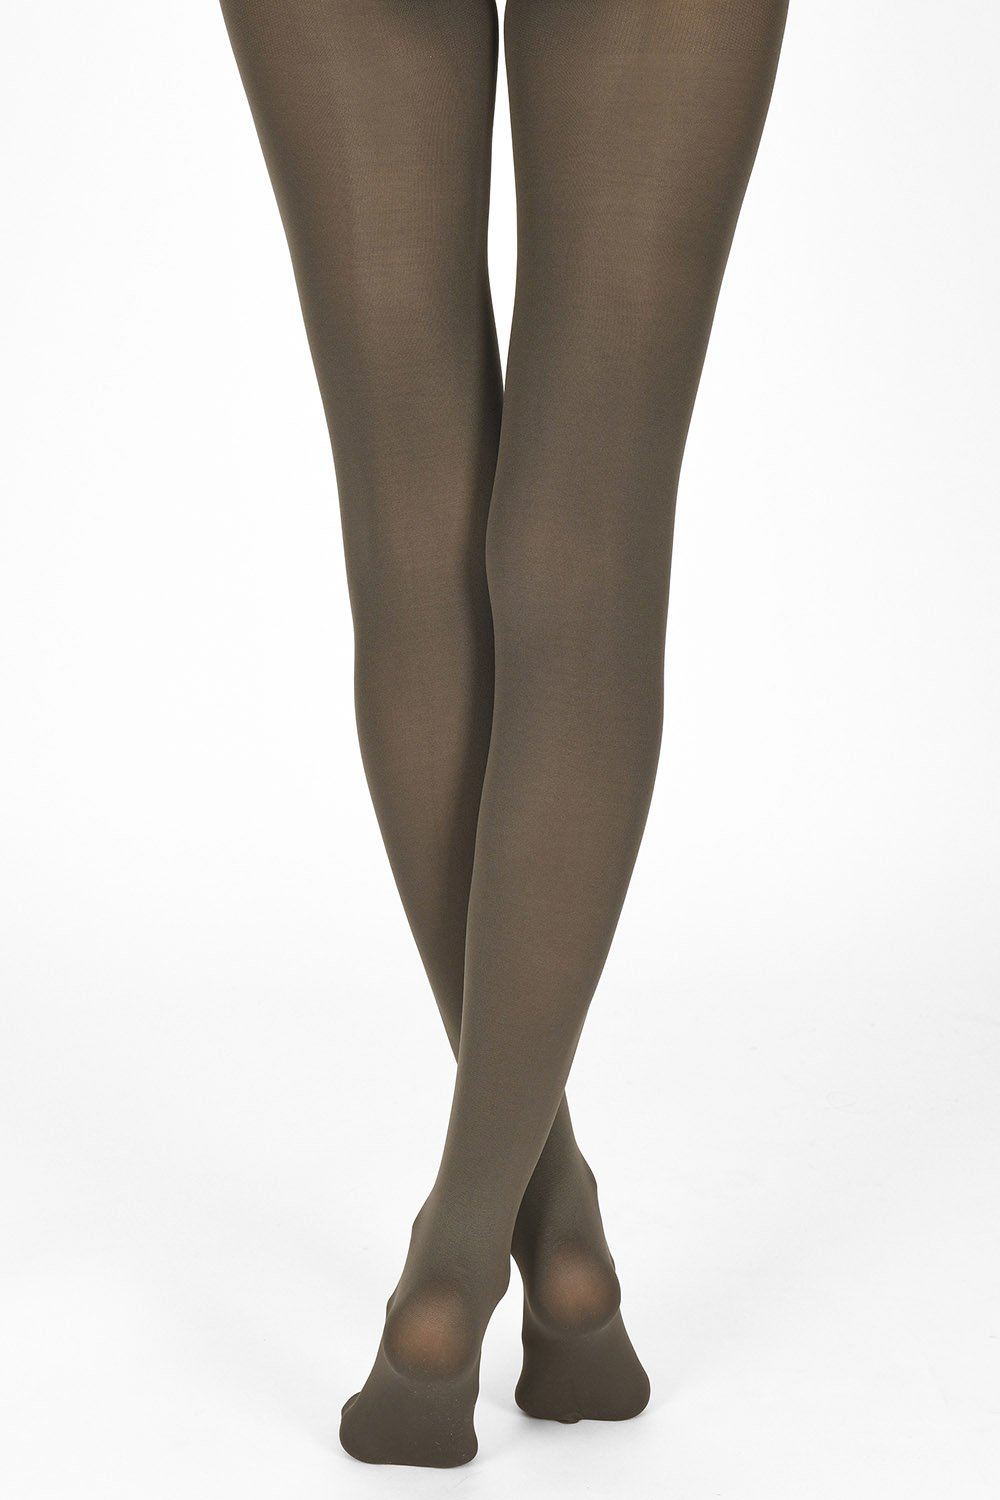 storm grey tights 100 denier 2